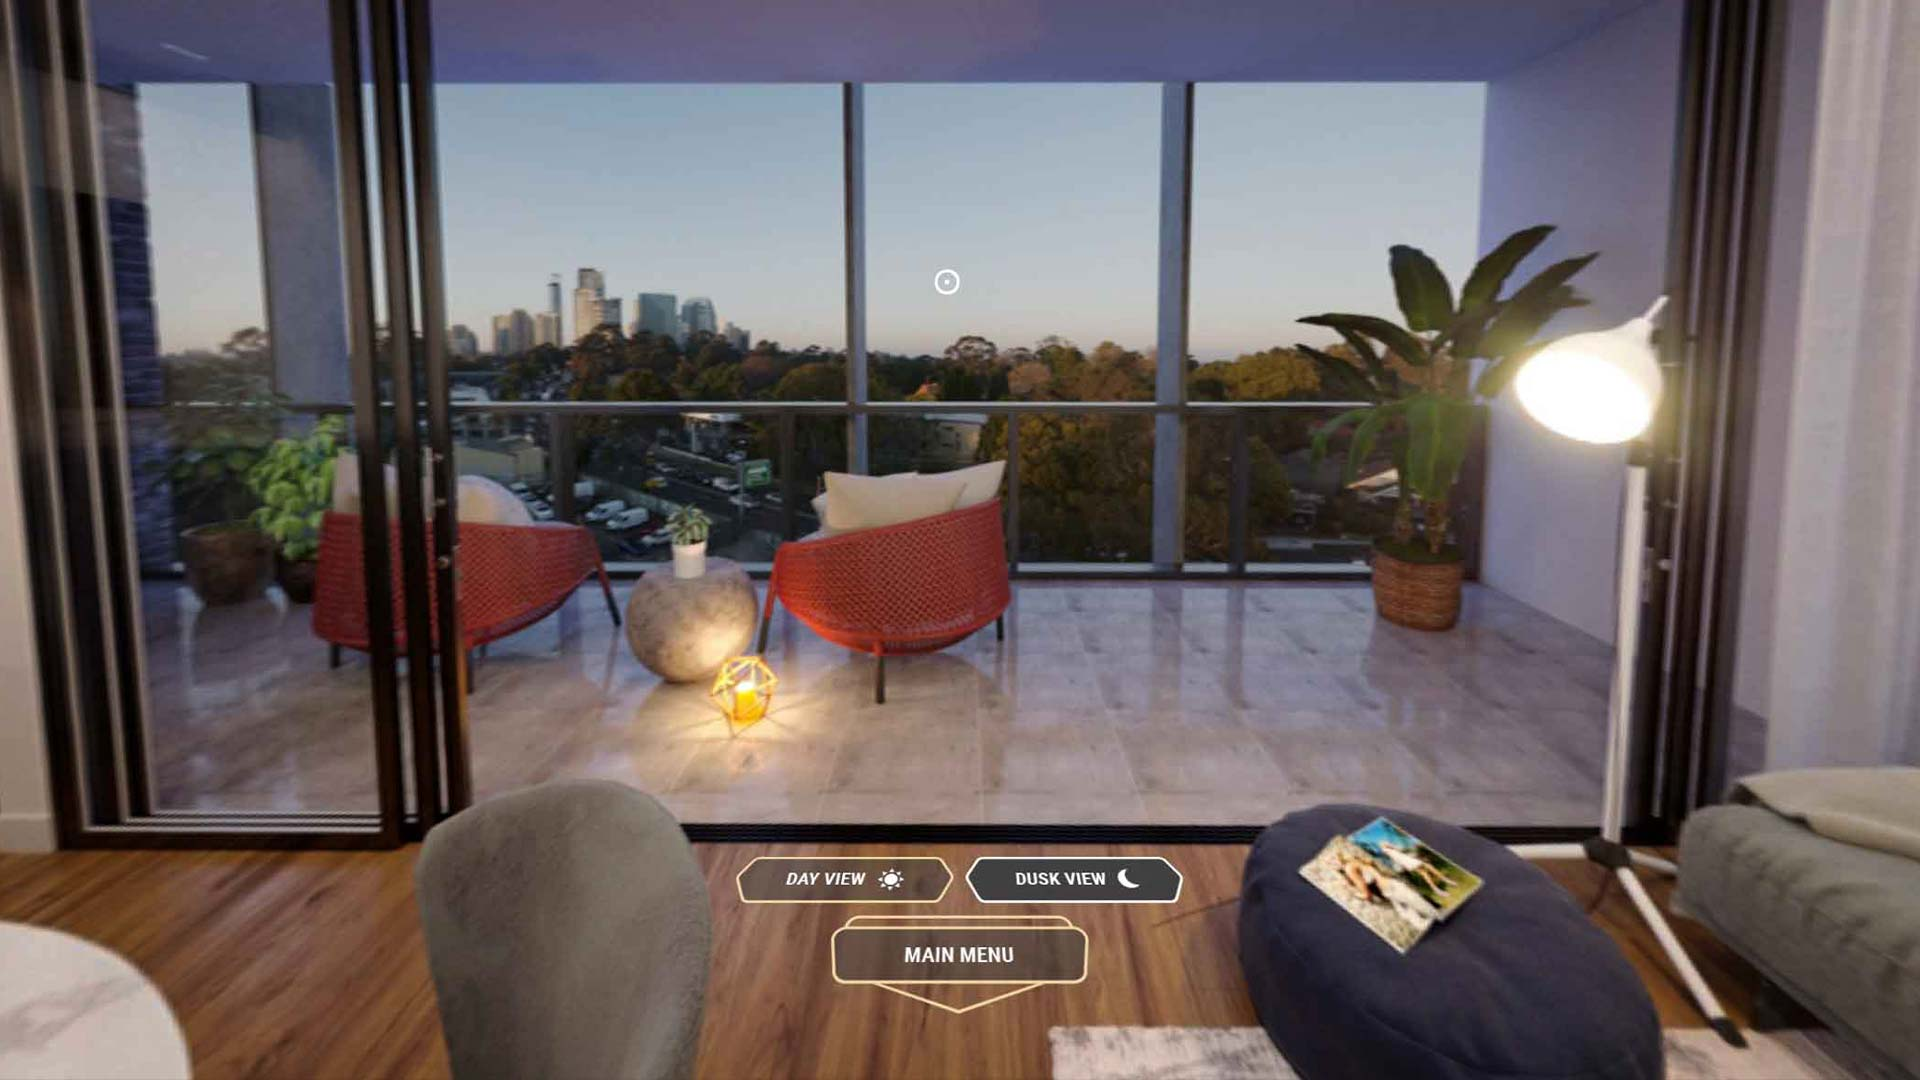 Real Estate VR Image of Chatswood Rose VR by Start Beyond 02